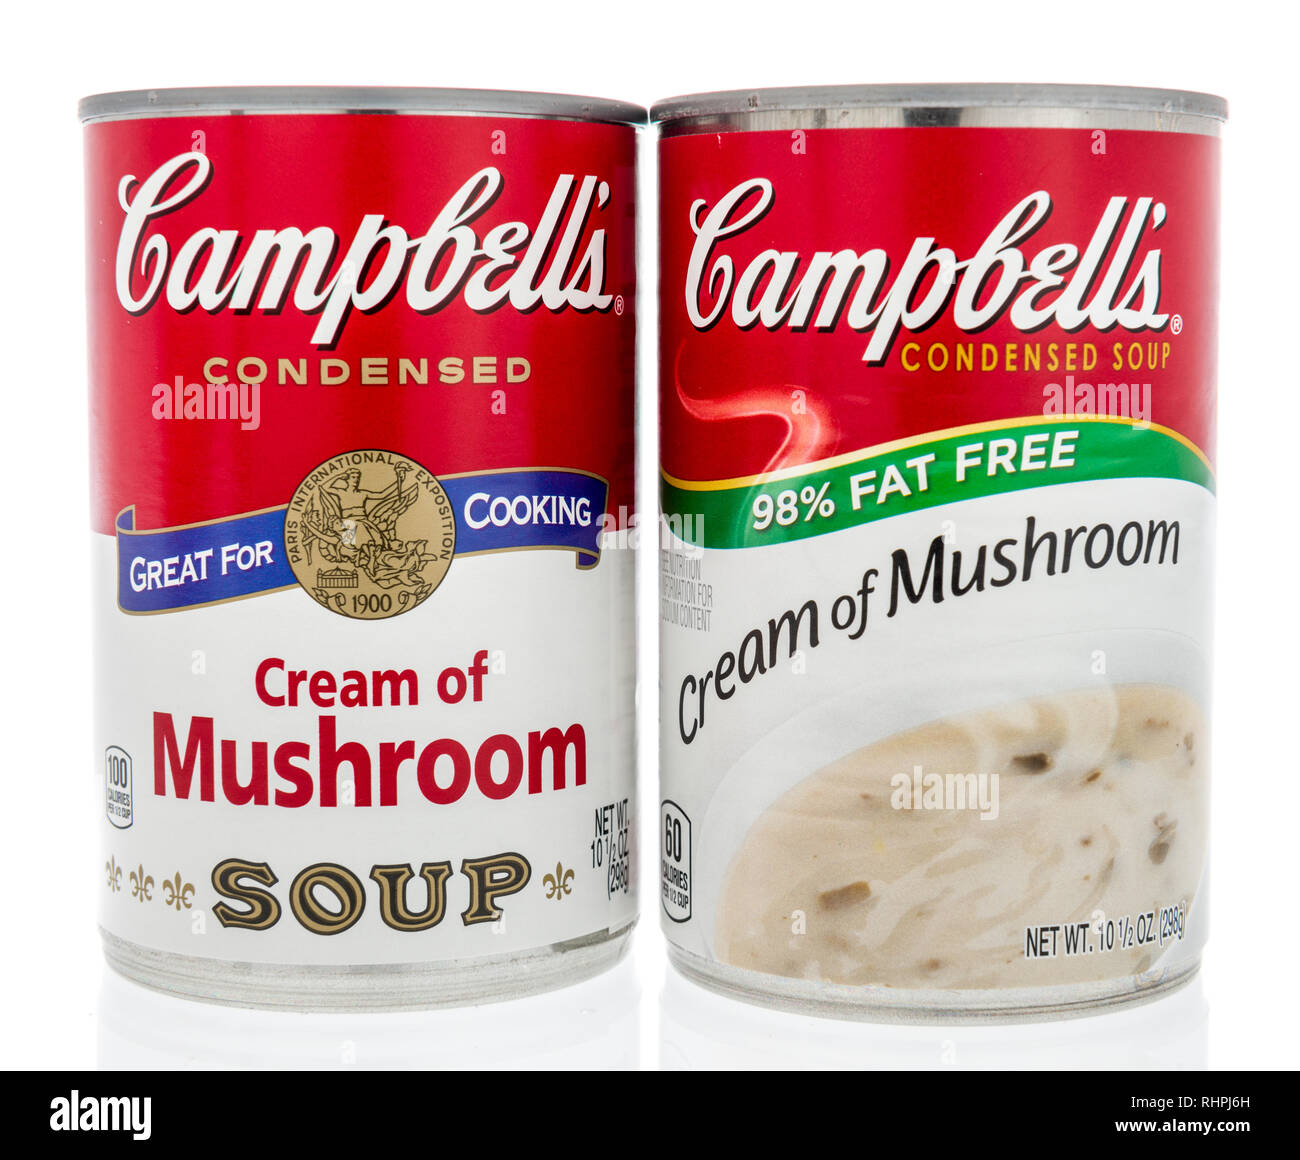 Winneconne, WI - 2 Feb 2019: A pair of can of Campbells soup in cream of mushroom of original and fat free on an isolated background Stock Photo